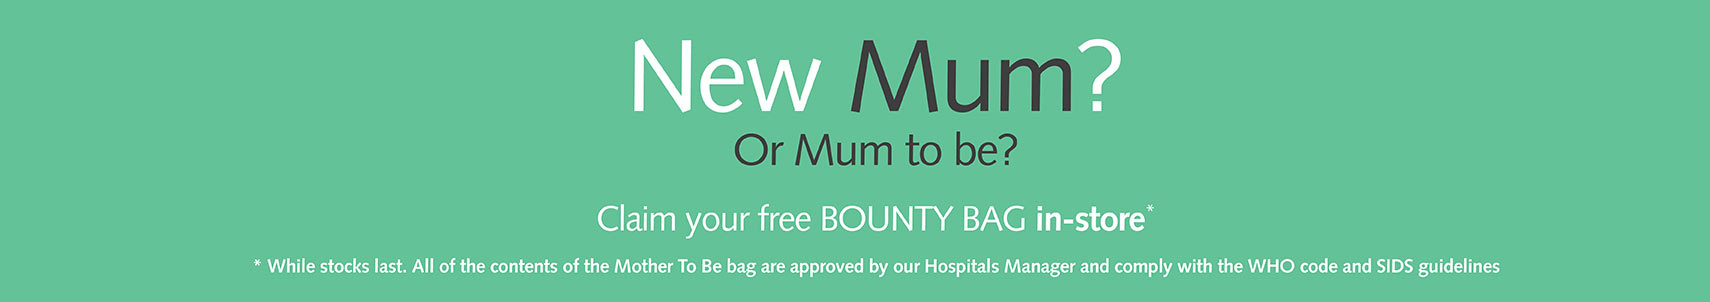 New Mom or Soon to be Mom Bounty Bags